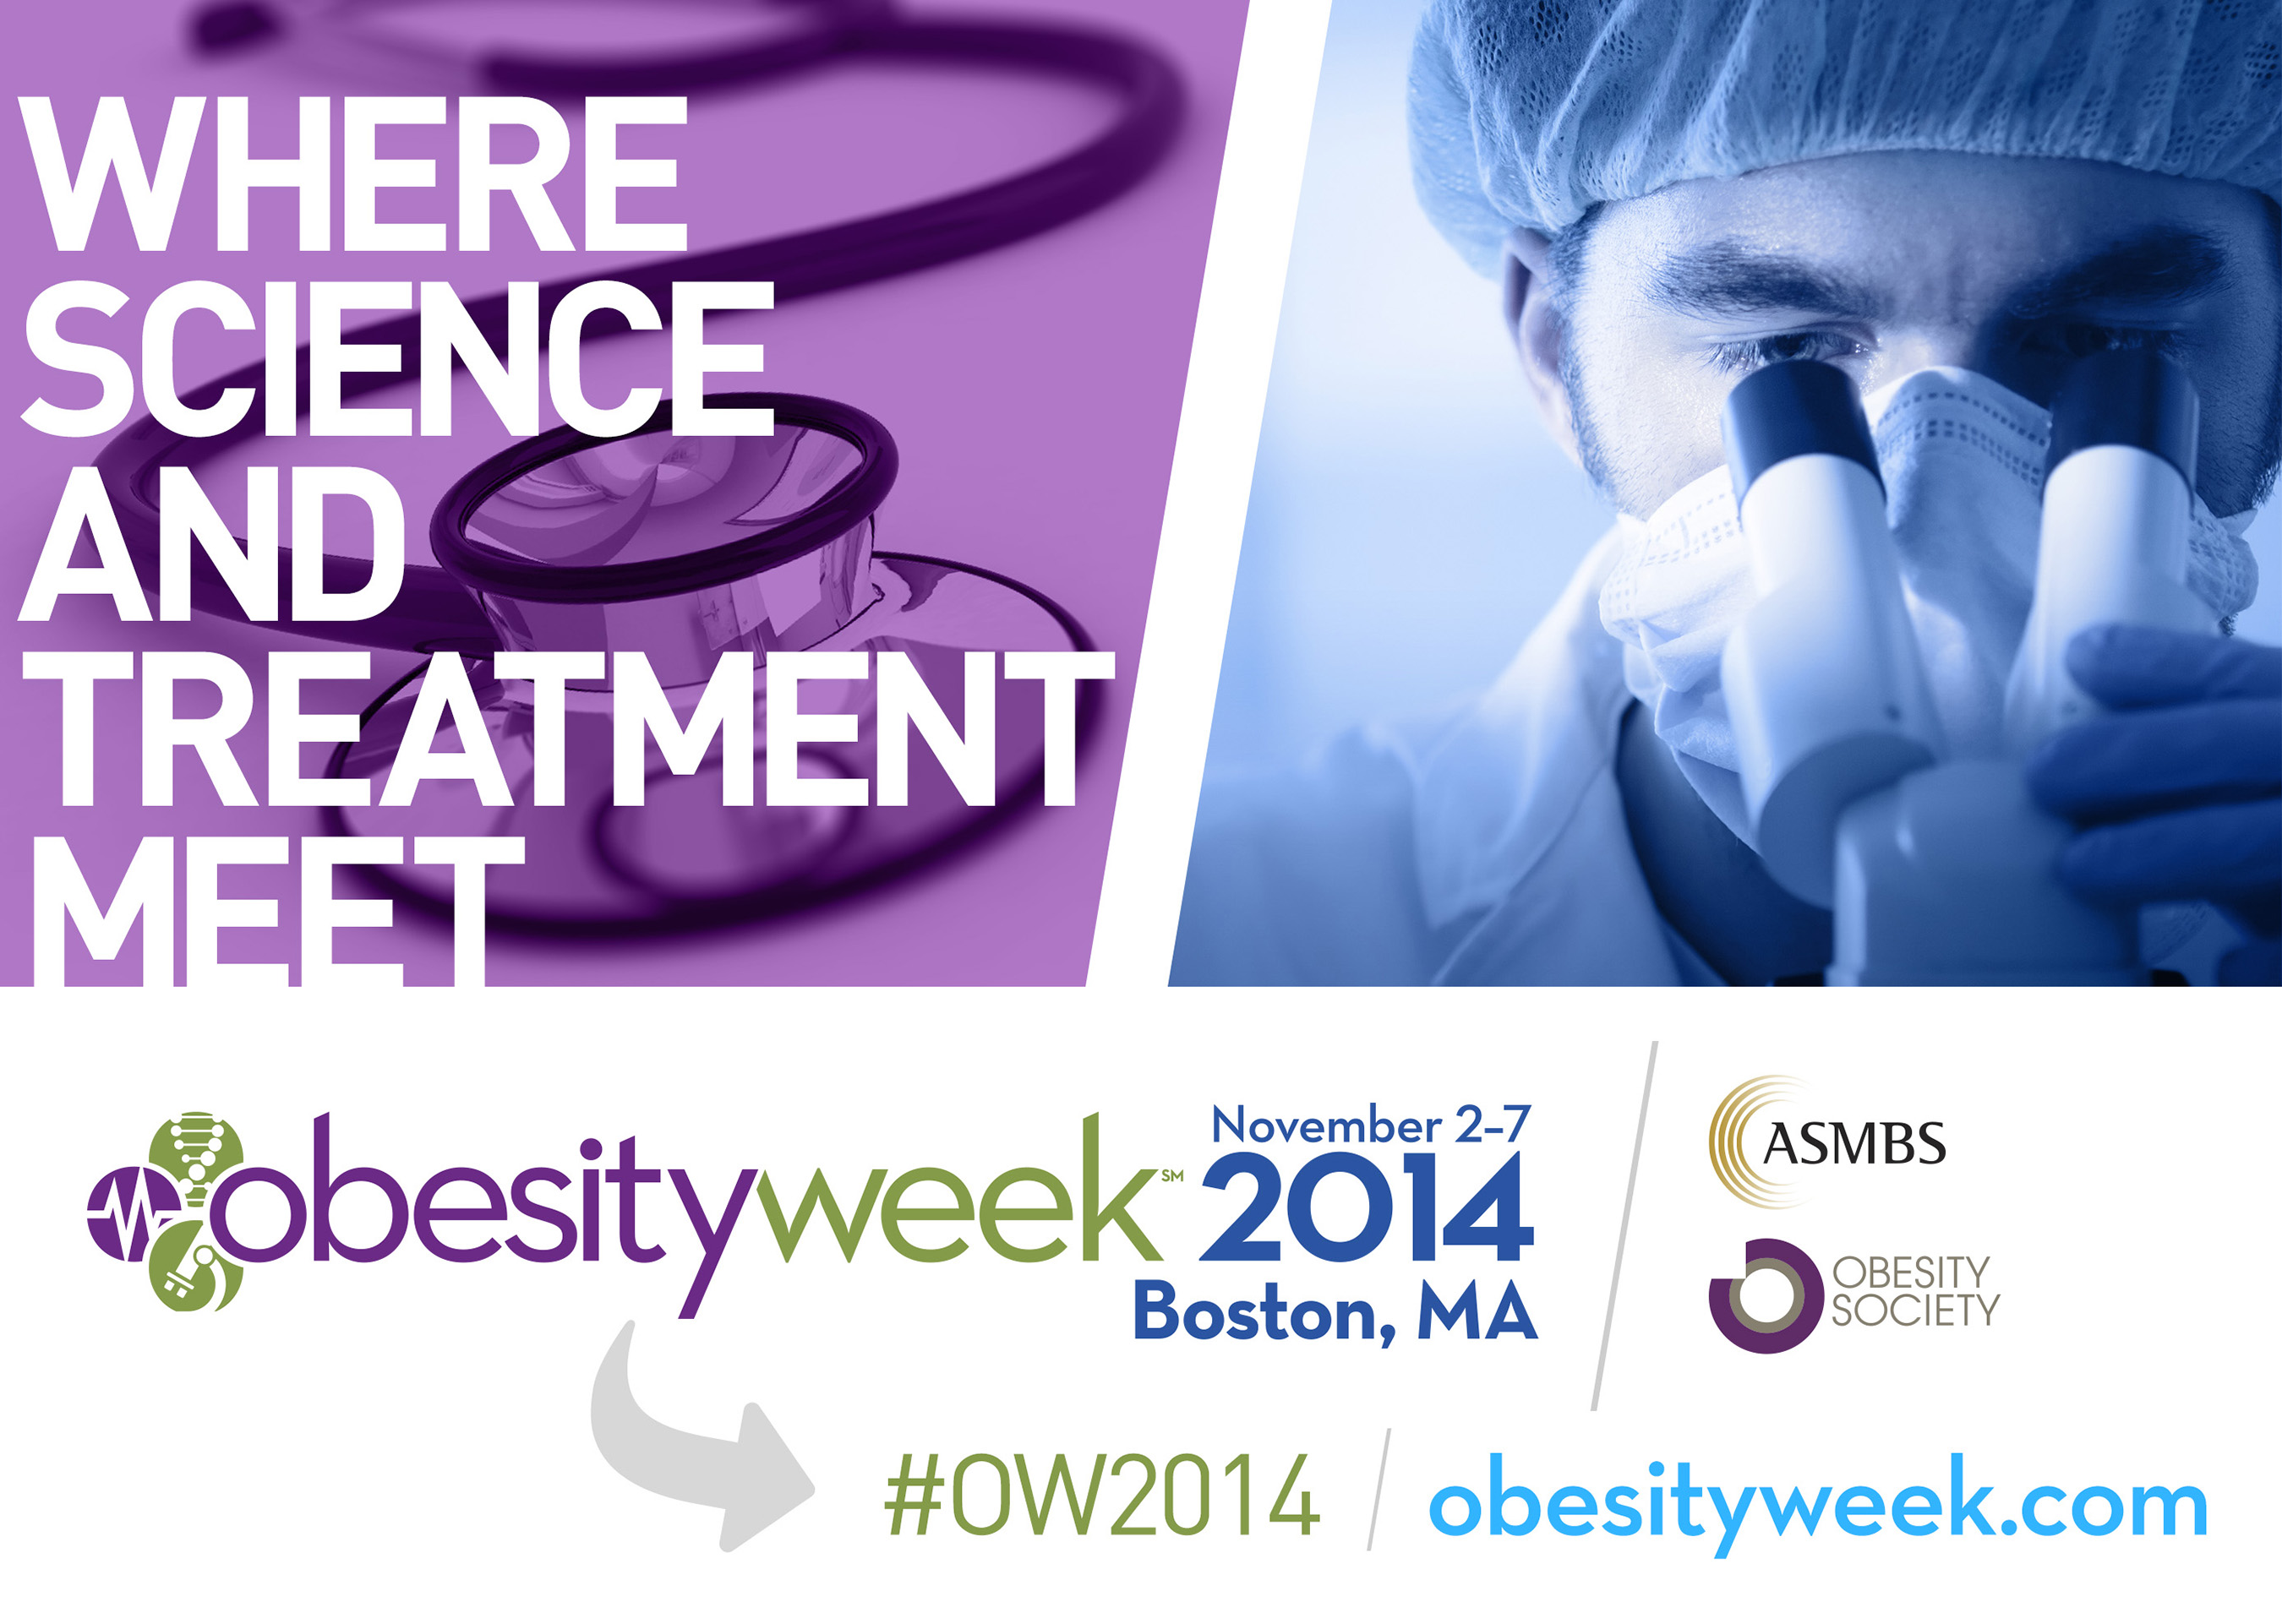 http://www.multivu.com/players/English/7160551-tos-asmbs-host-obesity-week-2014-weight-loss-strategies-boston/gallery/image/94a7da2d-c925-4aef-b105-e7bc504a0ee9.HR.jpg